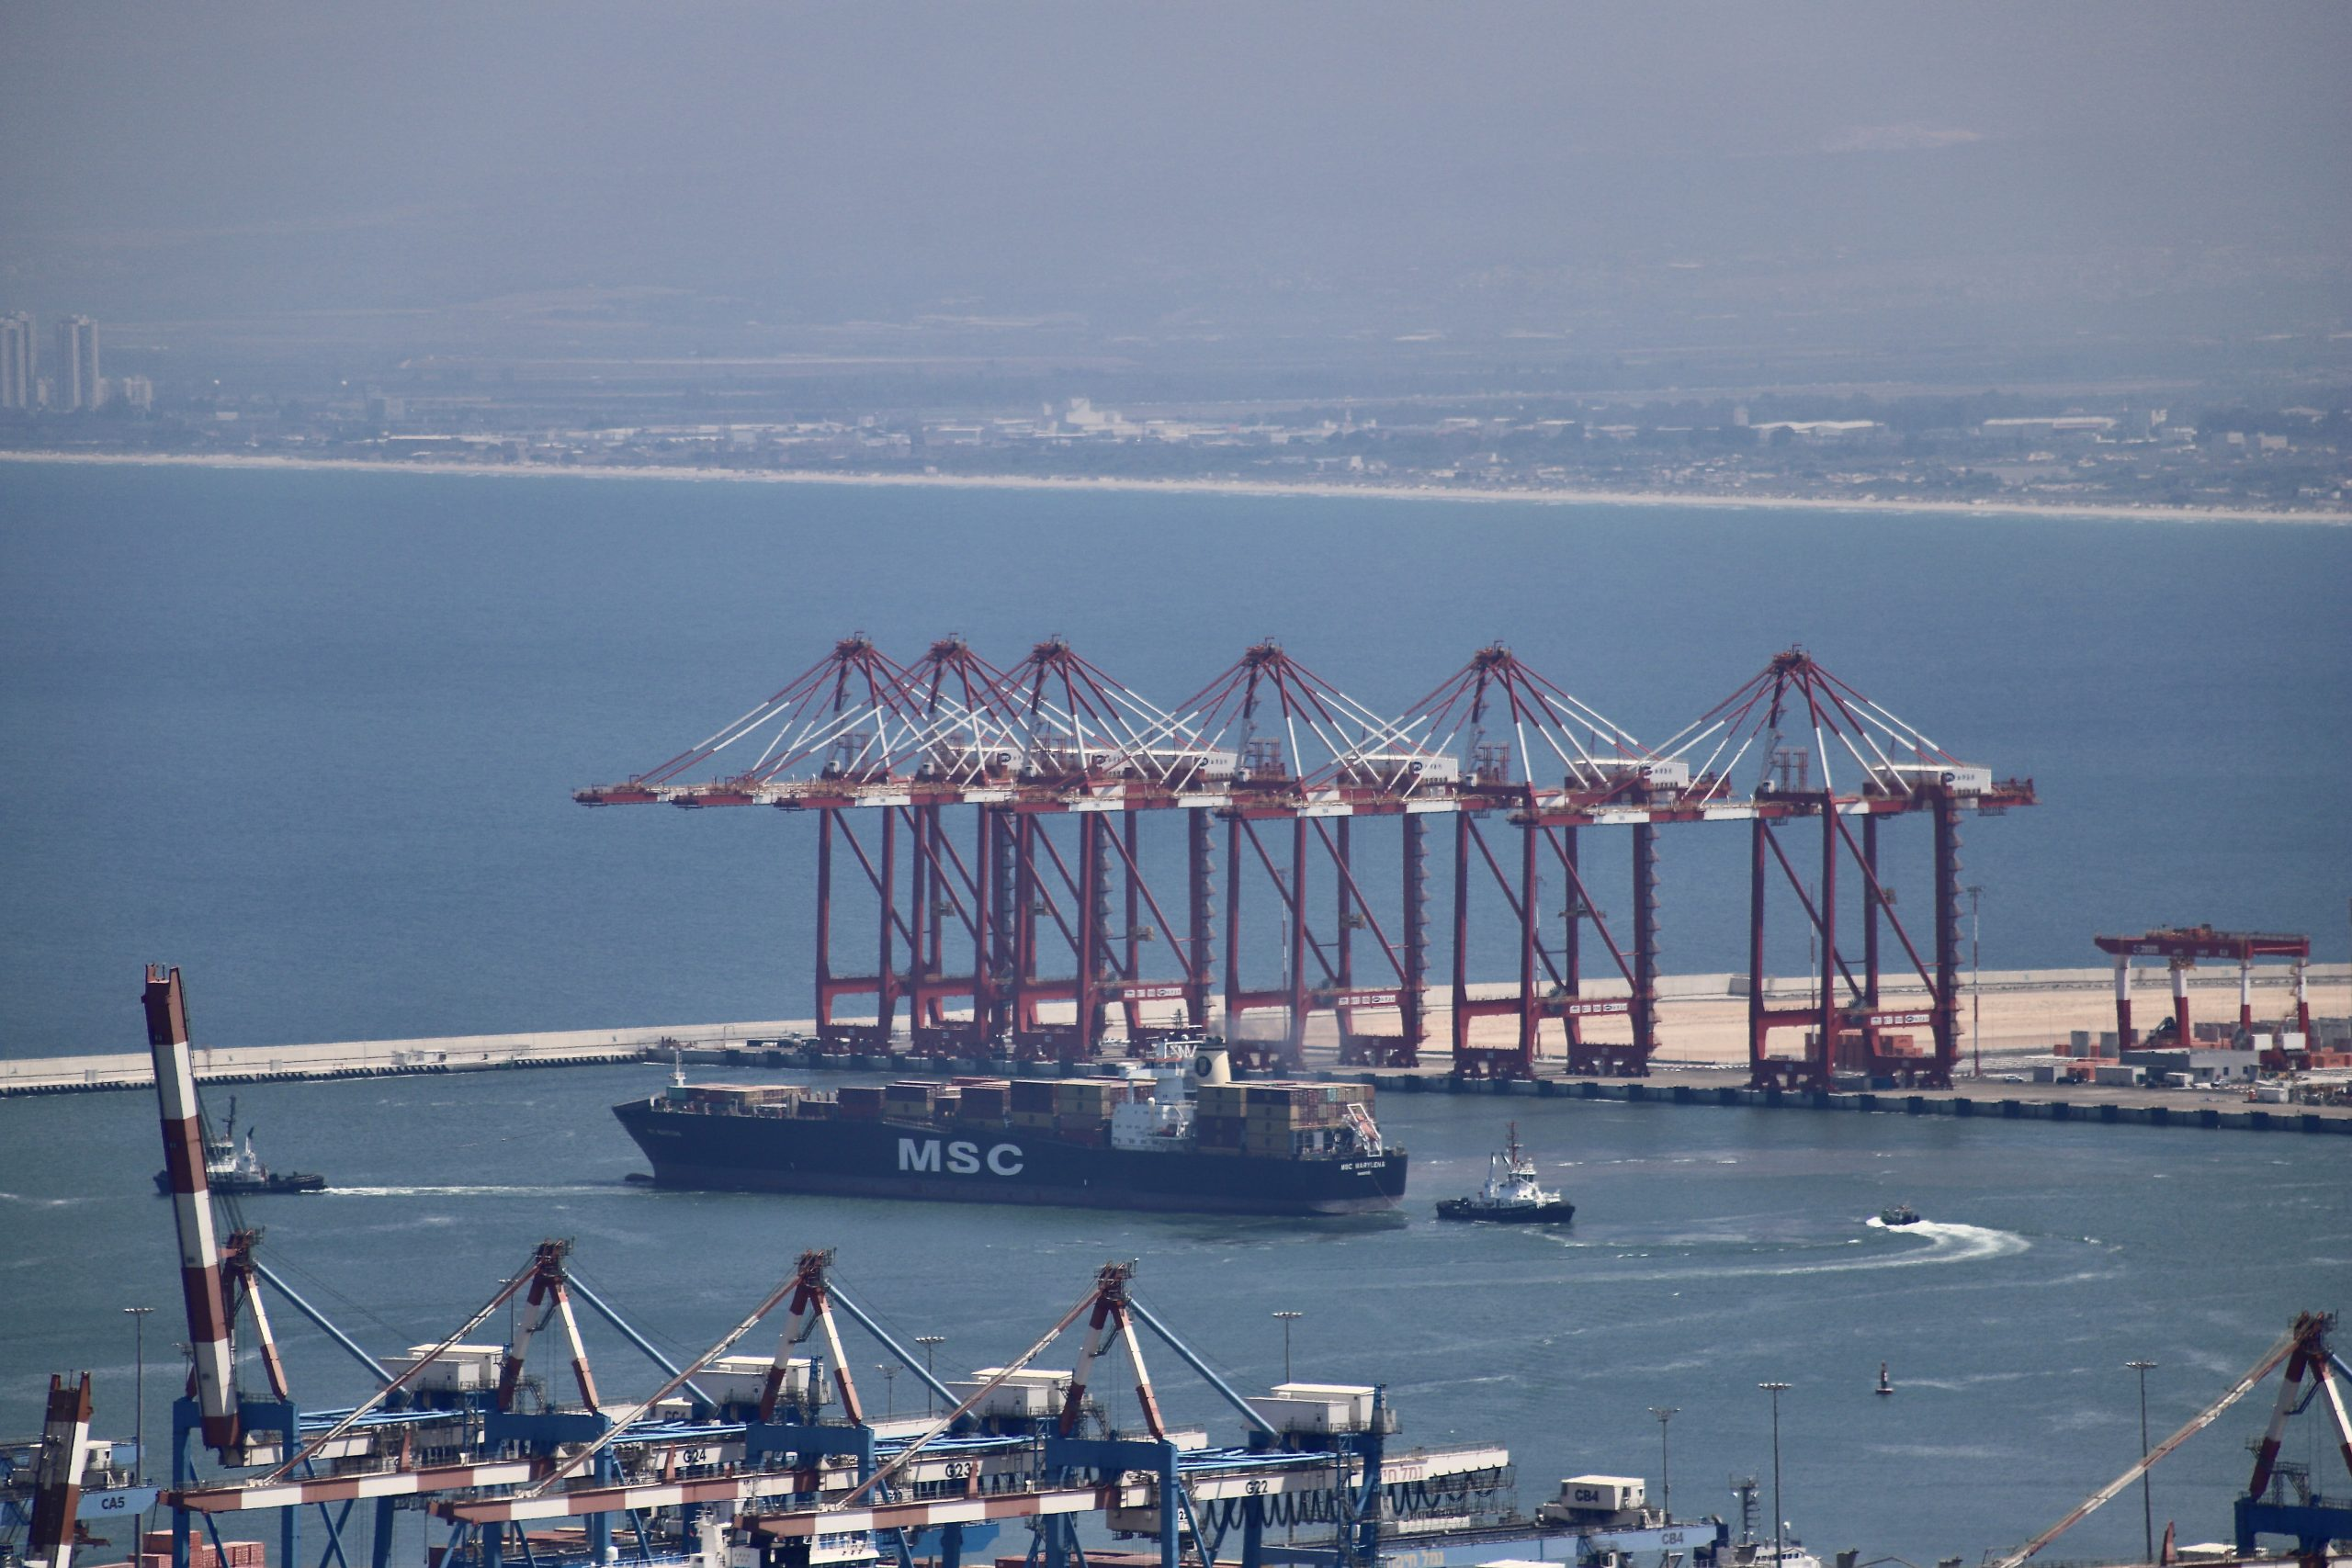 MSC Marylena, the first ship processed in a new Bay Port in Haifa, leaves to Turkey